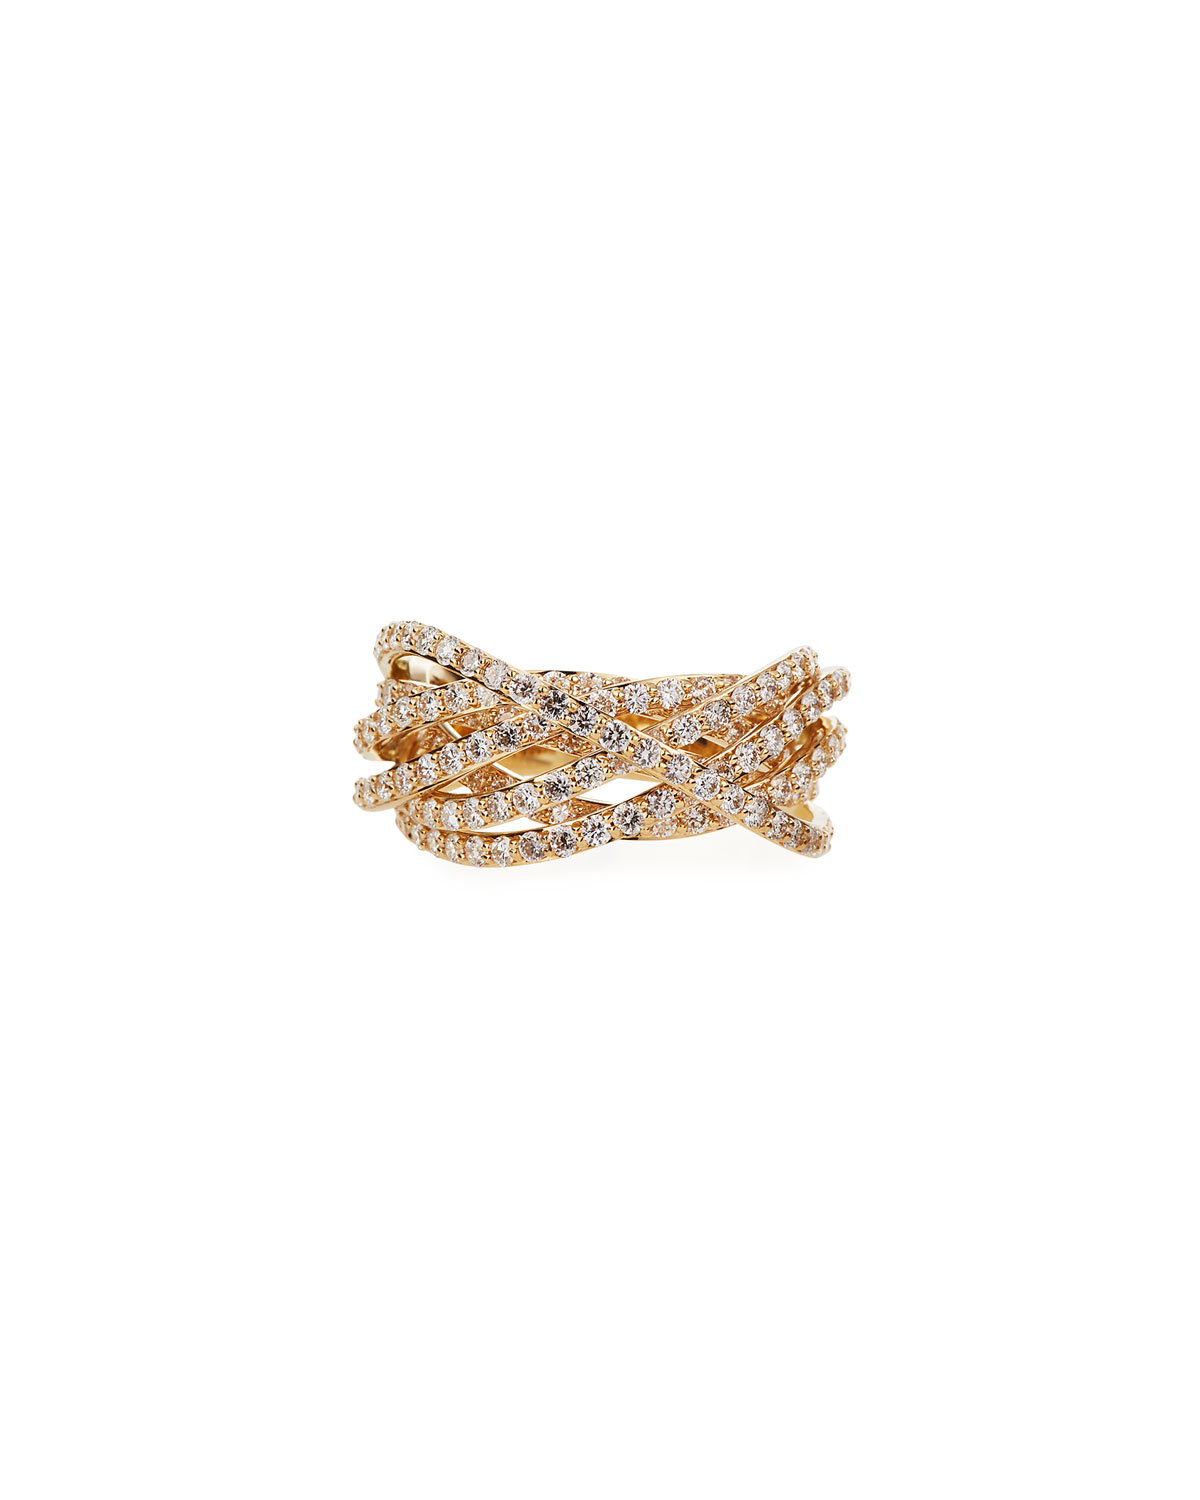 Lana 14k Flawless Diamond Crossover Ring, Size 7